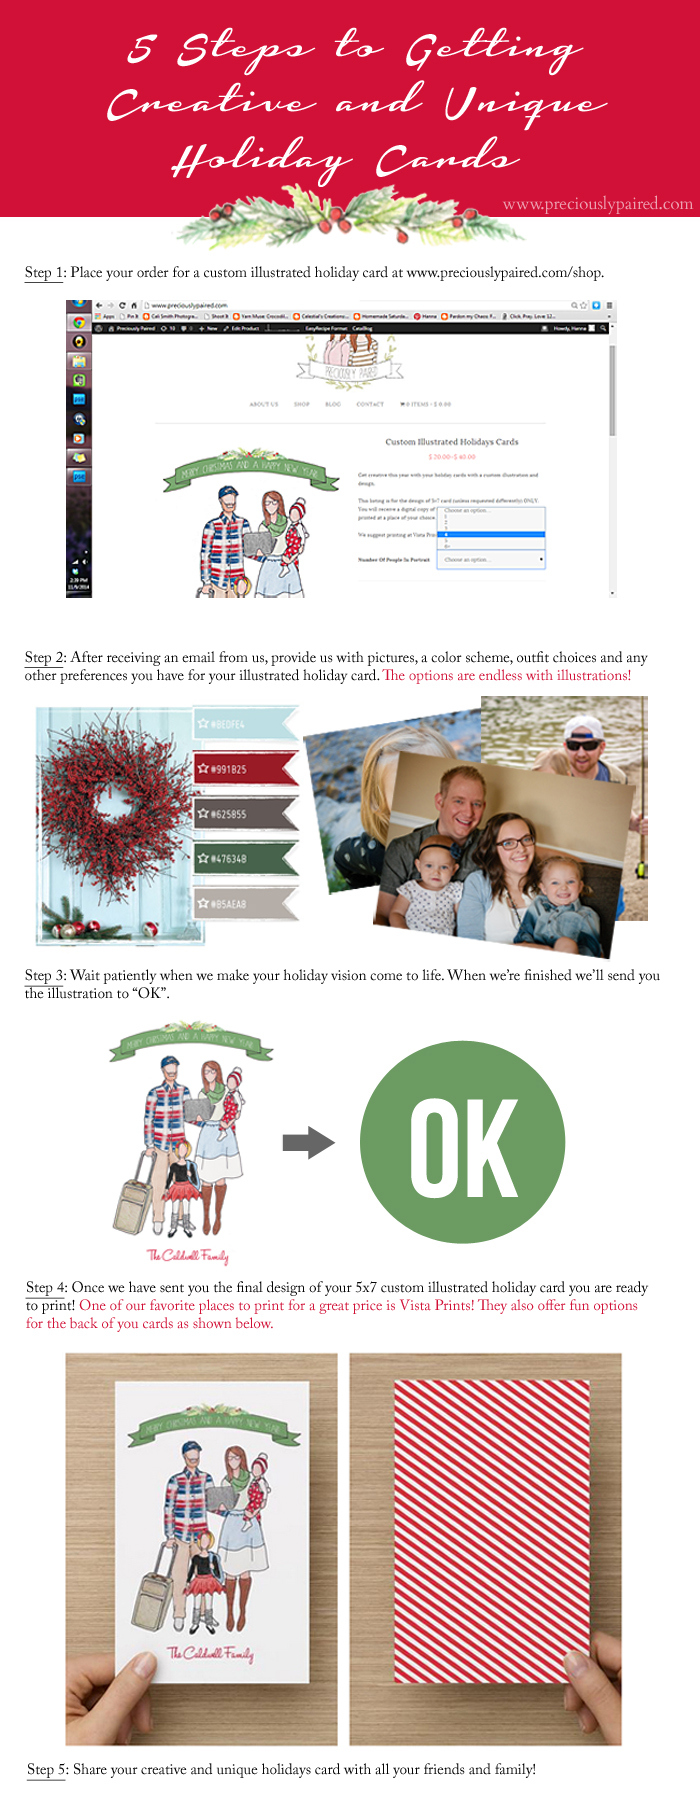 5 Steps to Getting Custom Illustrated Holiday Cards